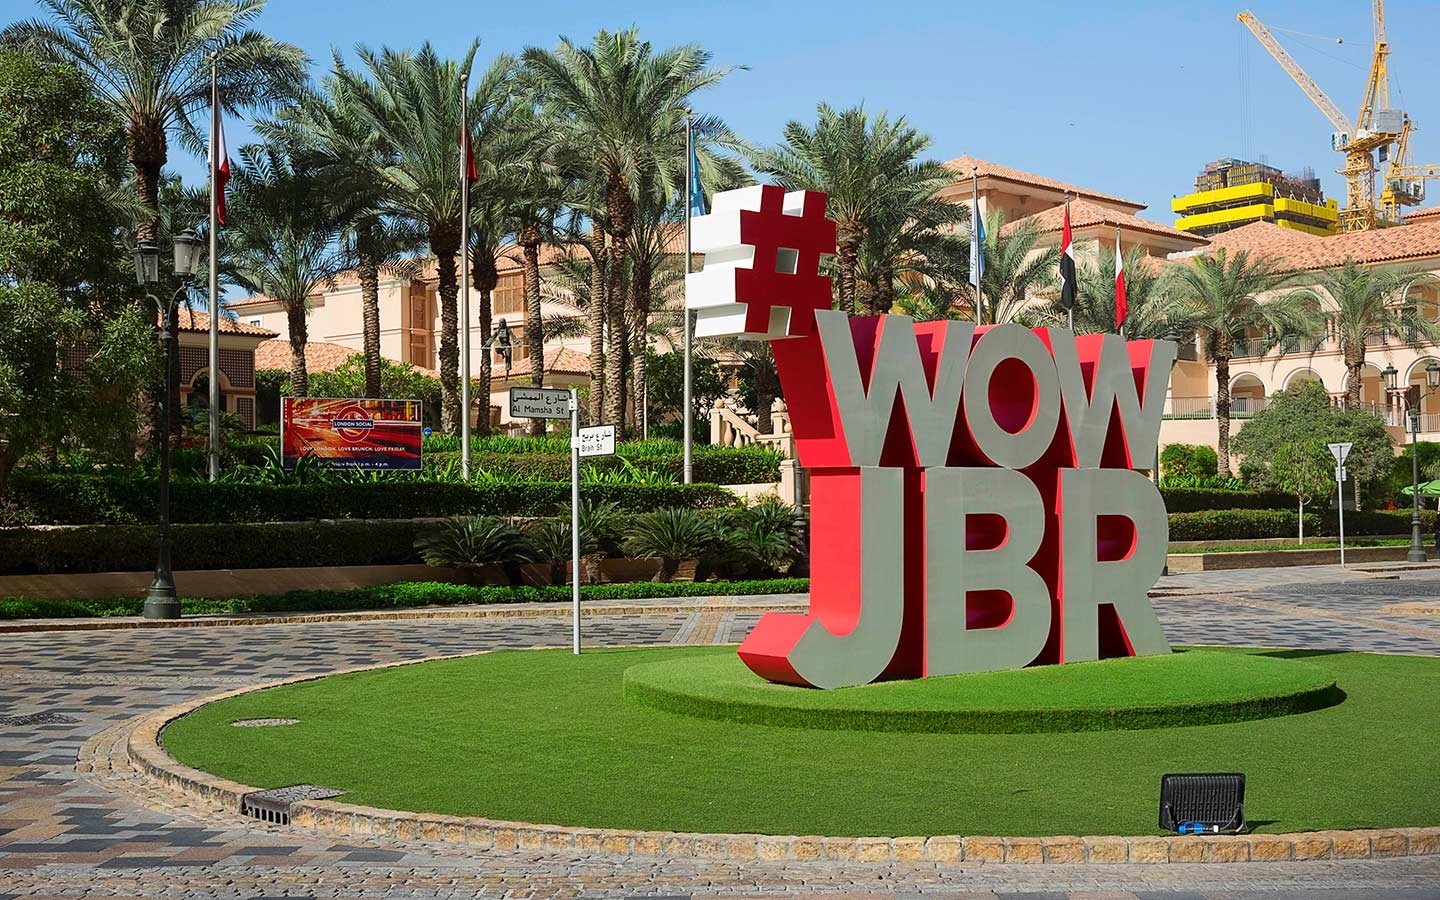 JBR is one of the best places in the UAE for art lovers to live